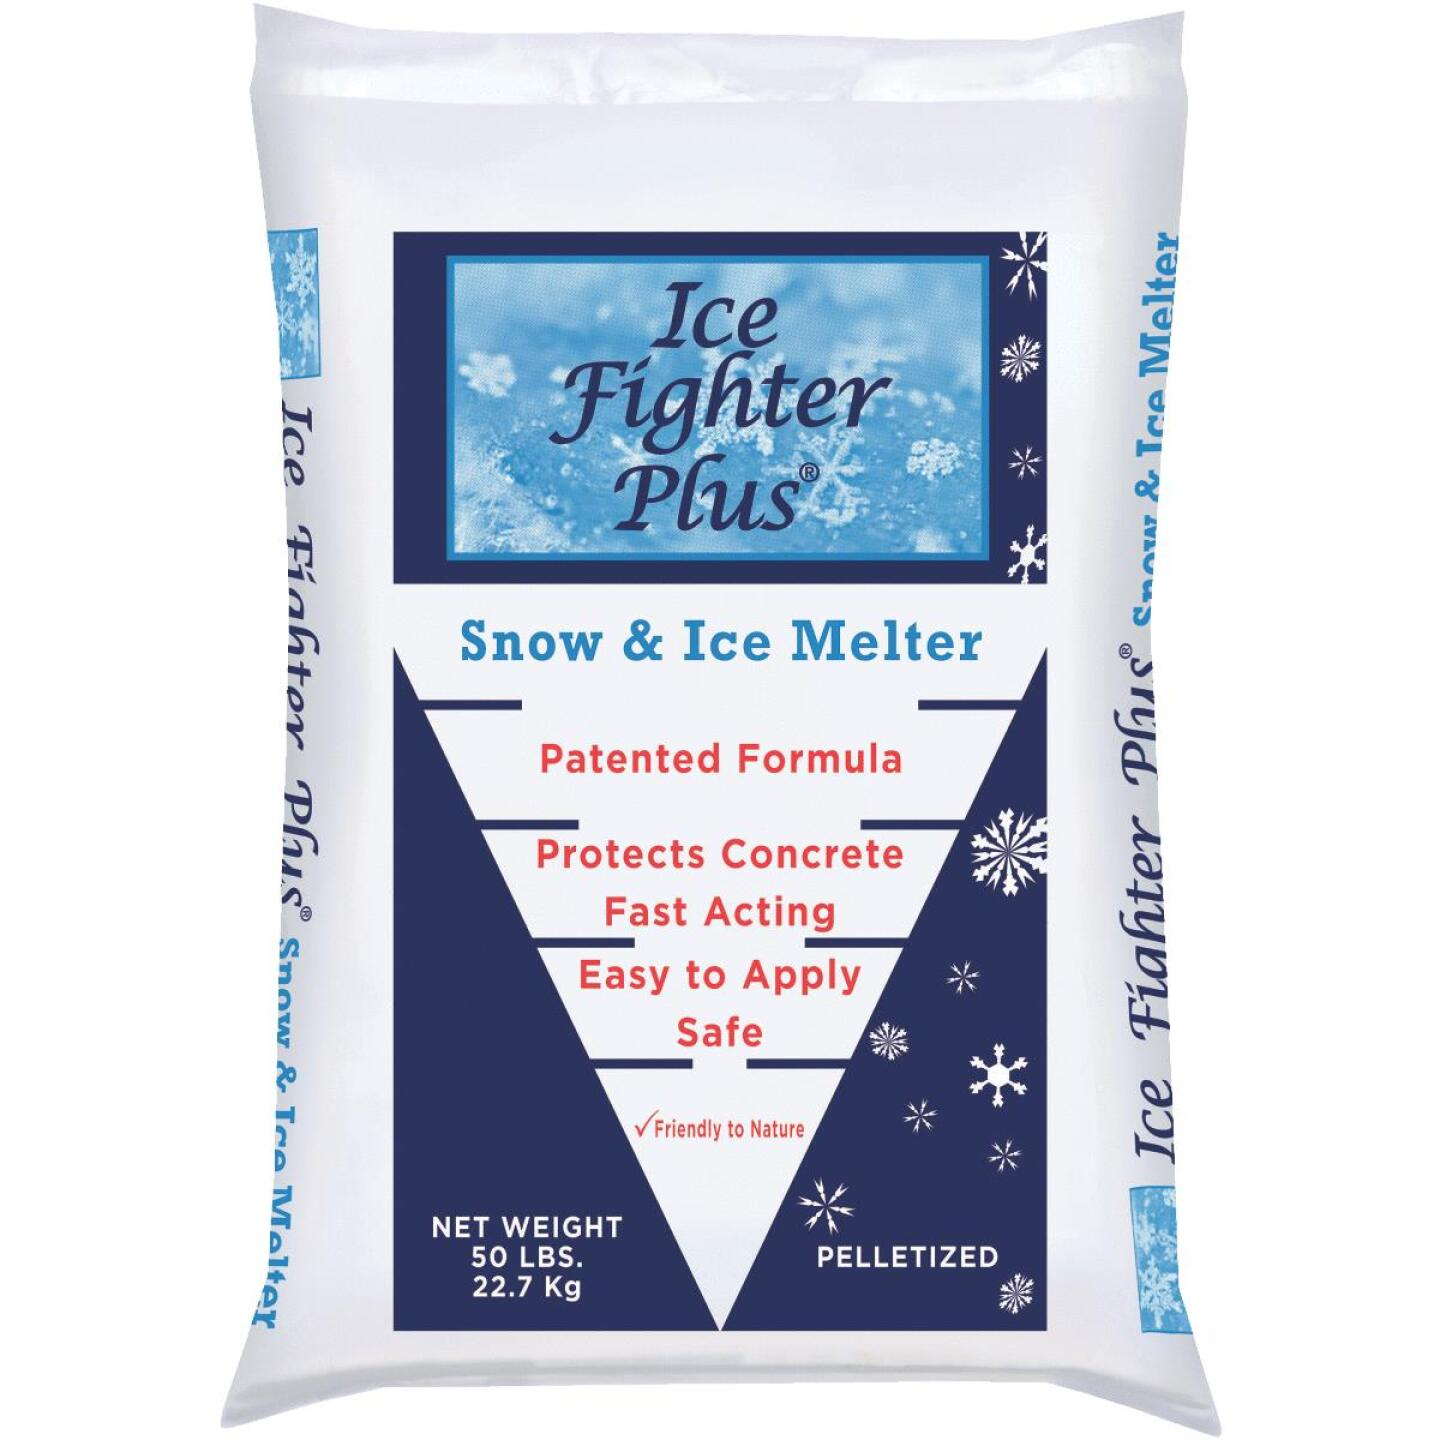 Ice Fighter Plus 50 Lb. Ice Melt Pellets Image 1